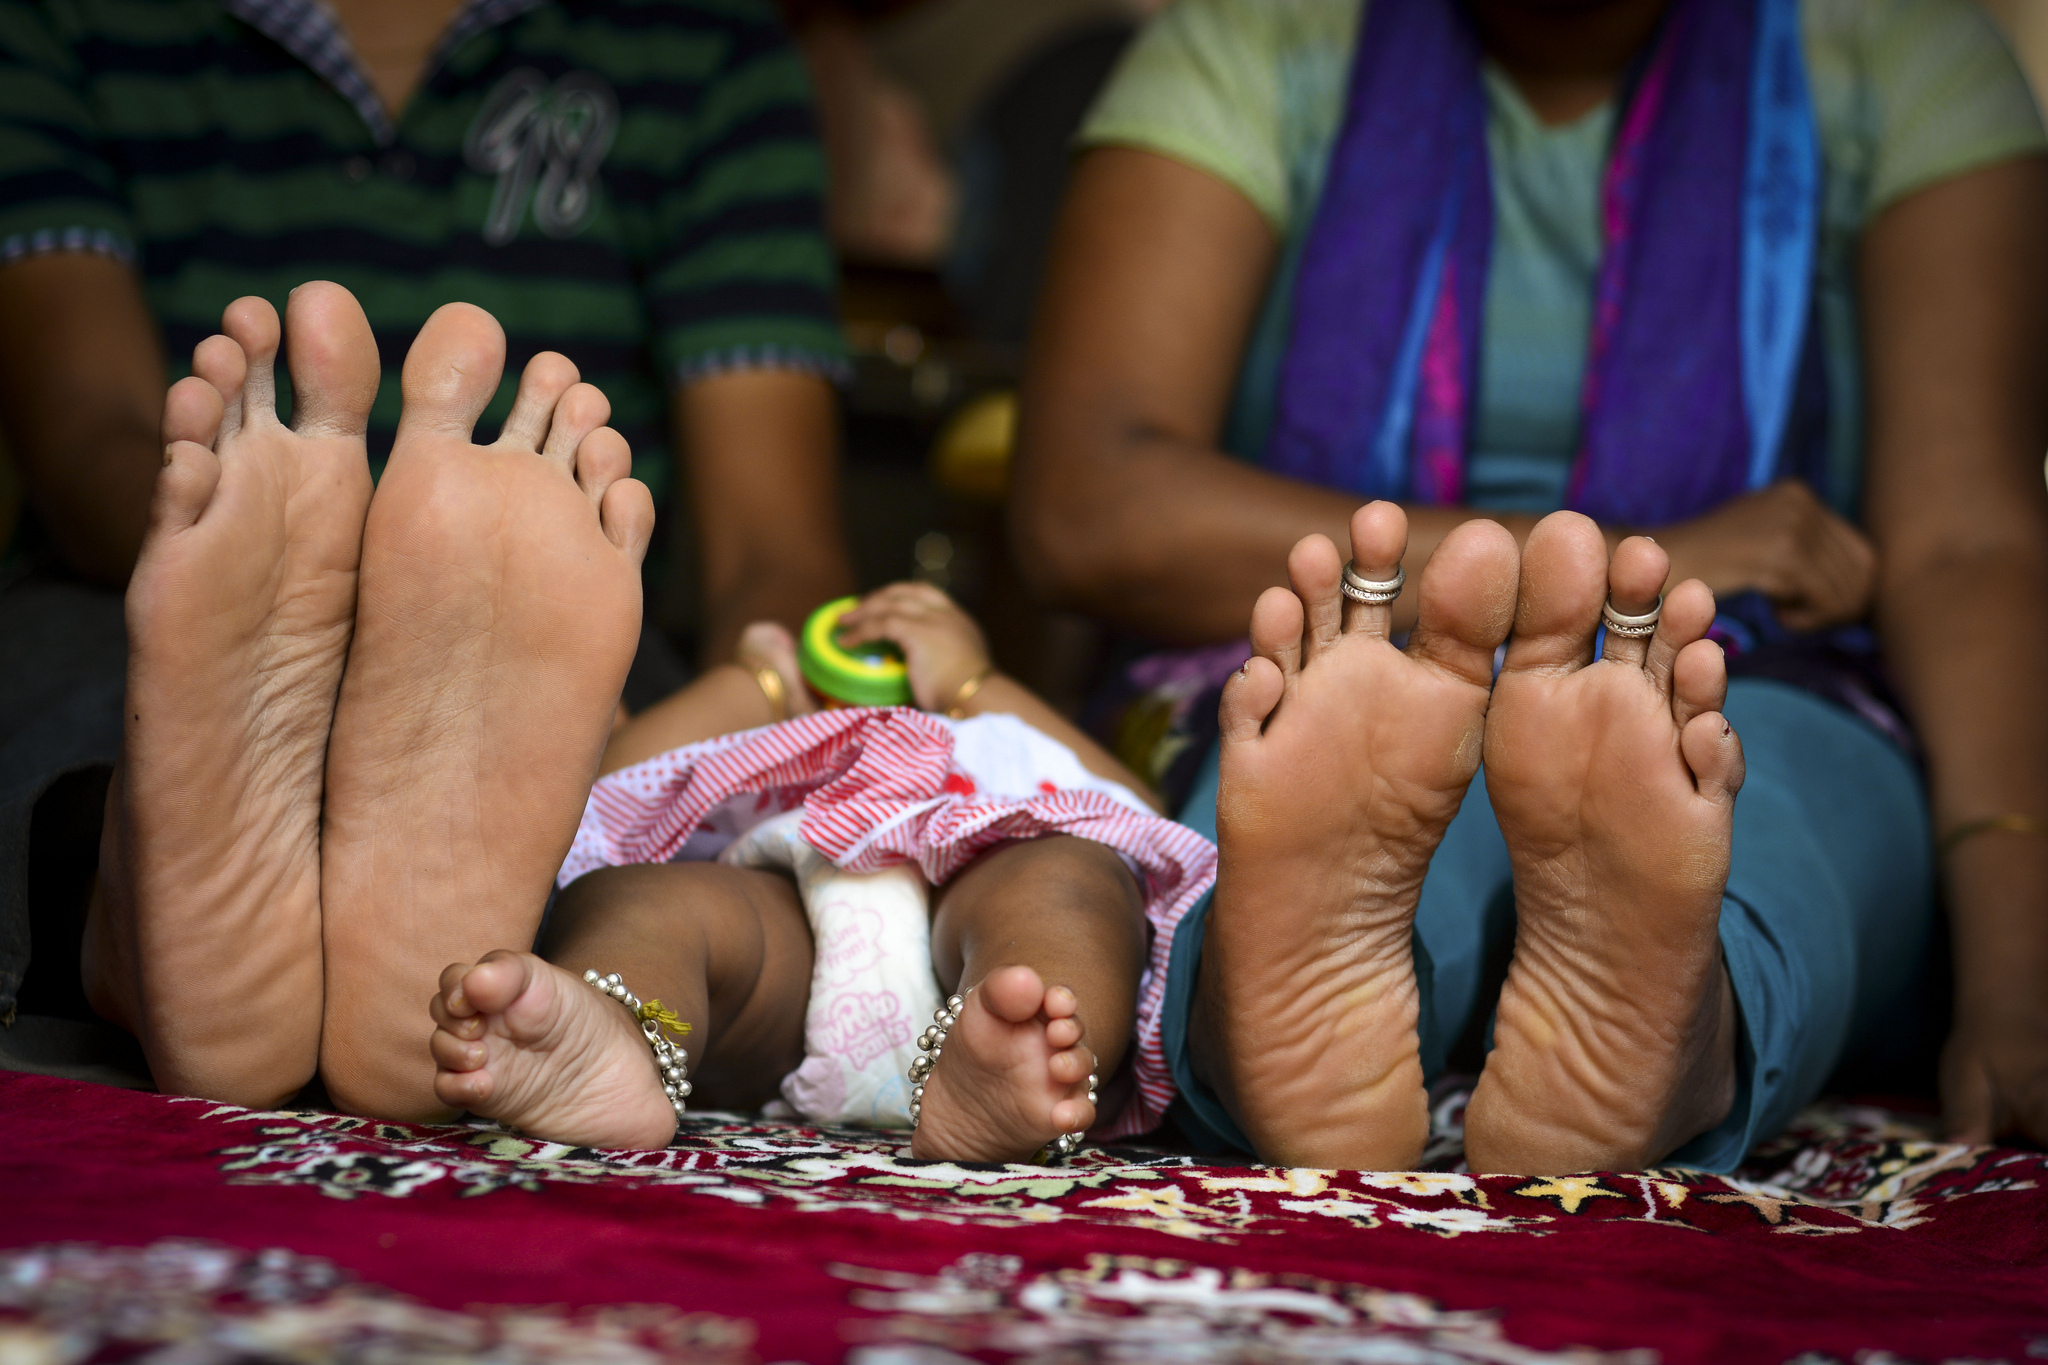 Image of a baby's feet in the middle of two adults' feet.